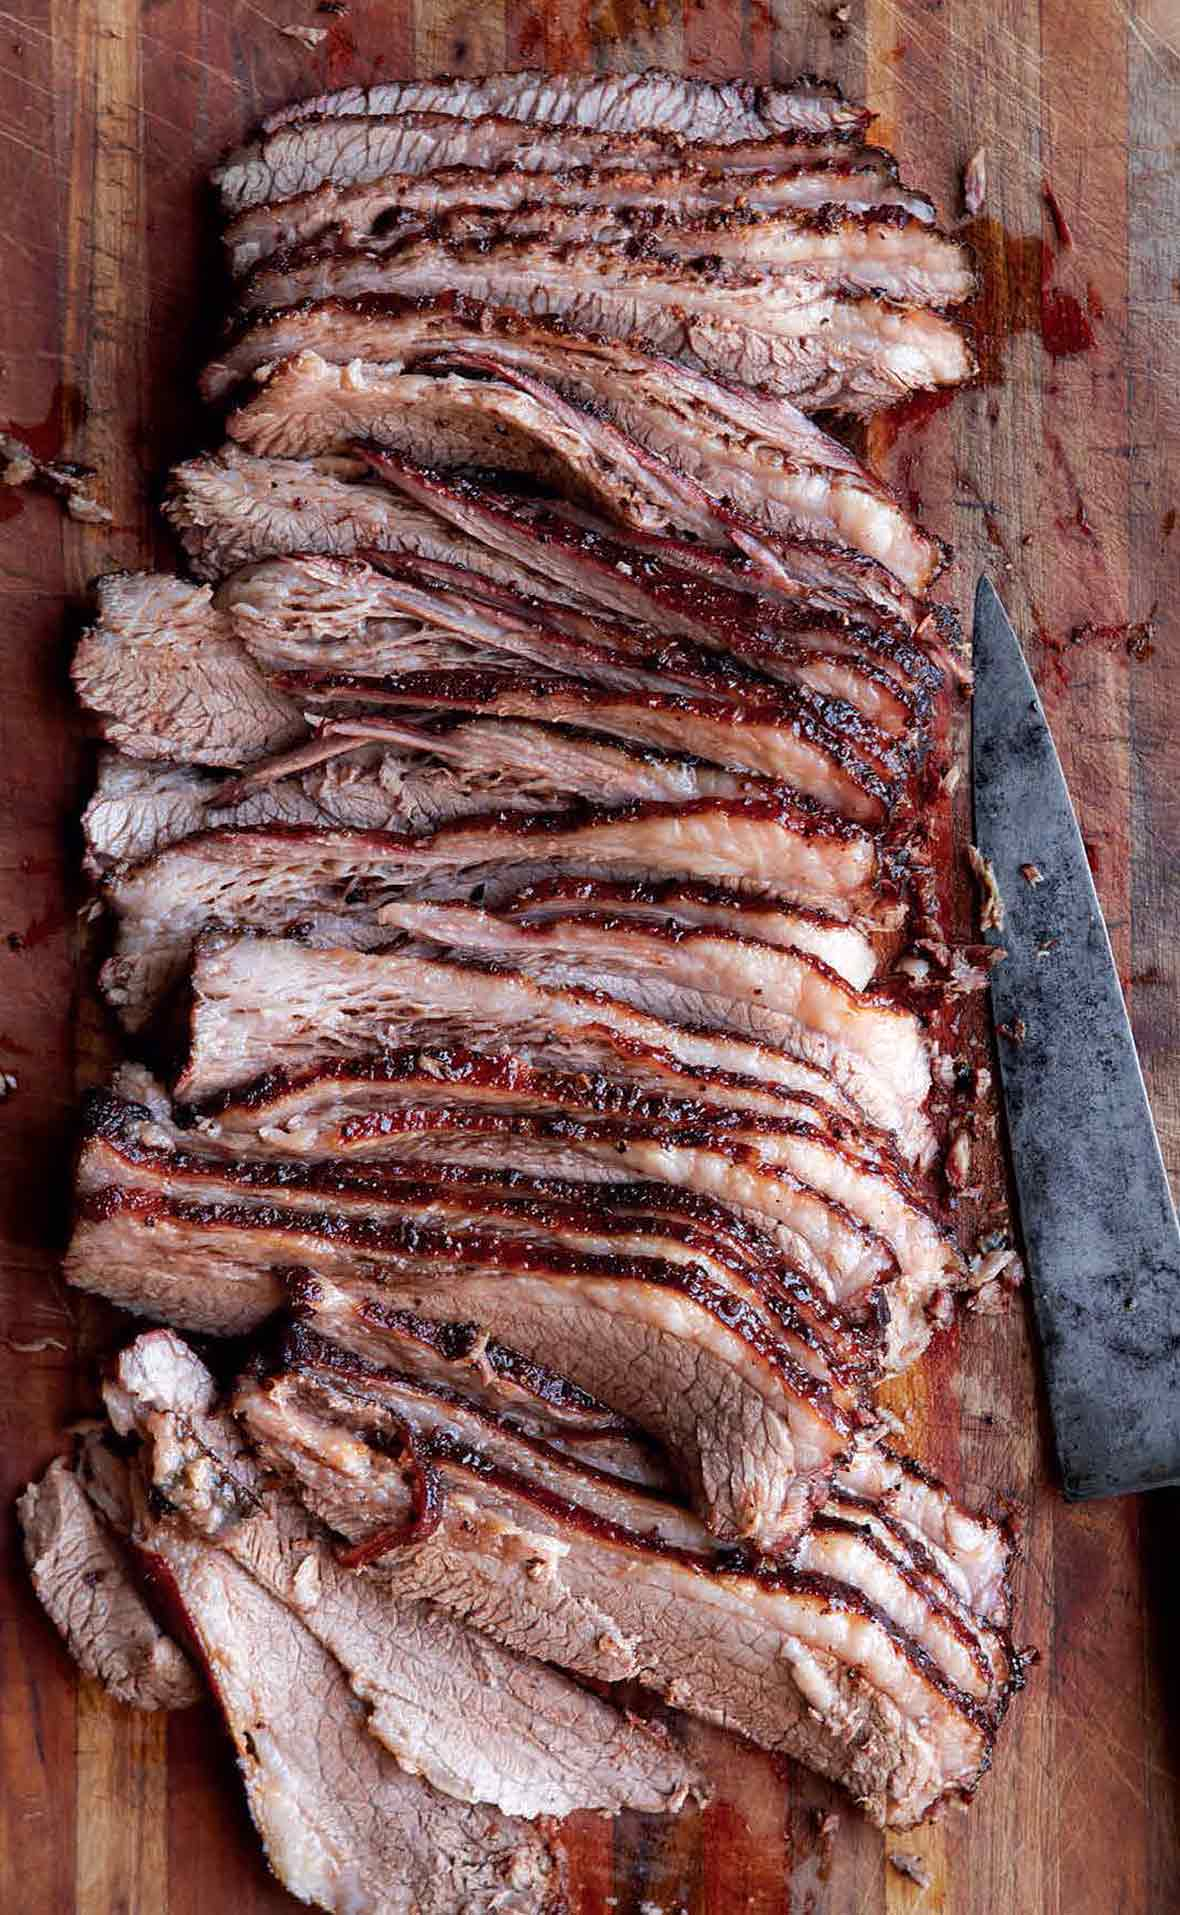 A sliced Texas brisket on a wooden board with a knife lying beside it.